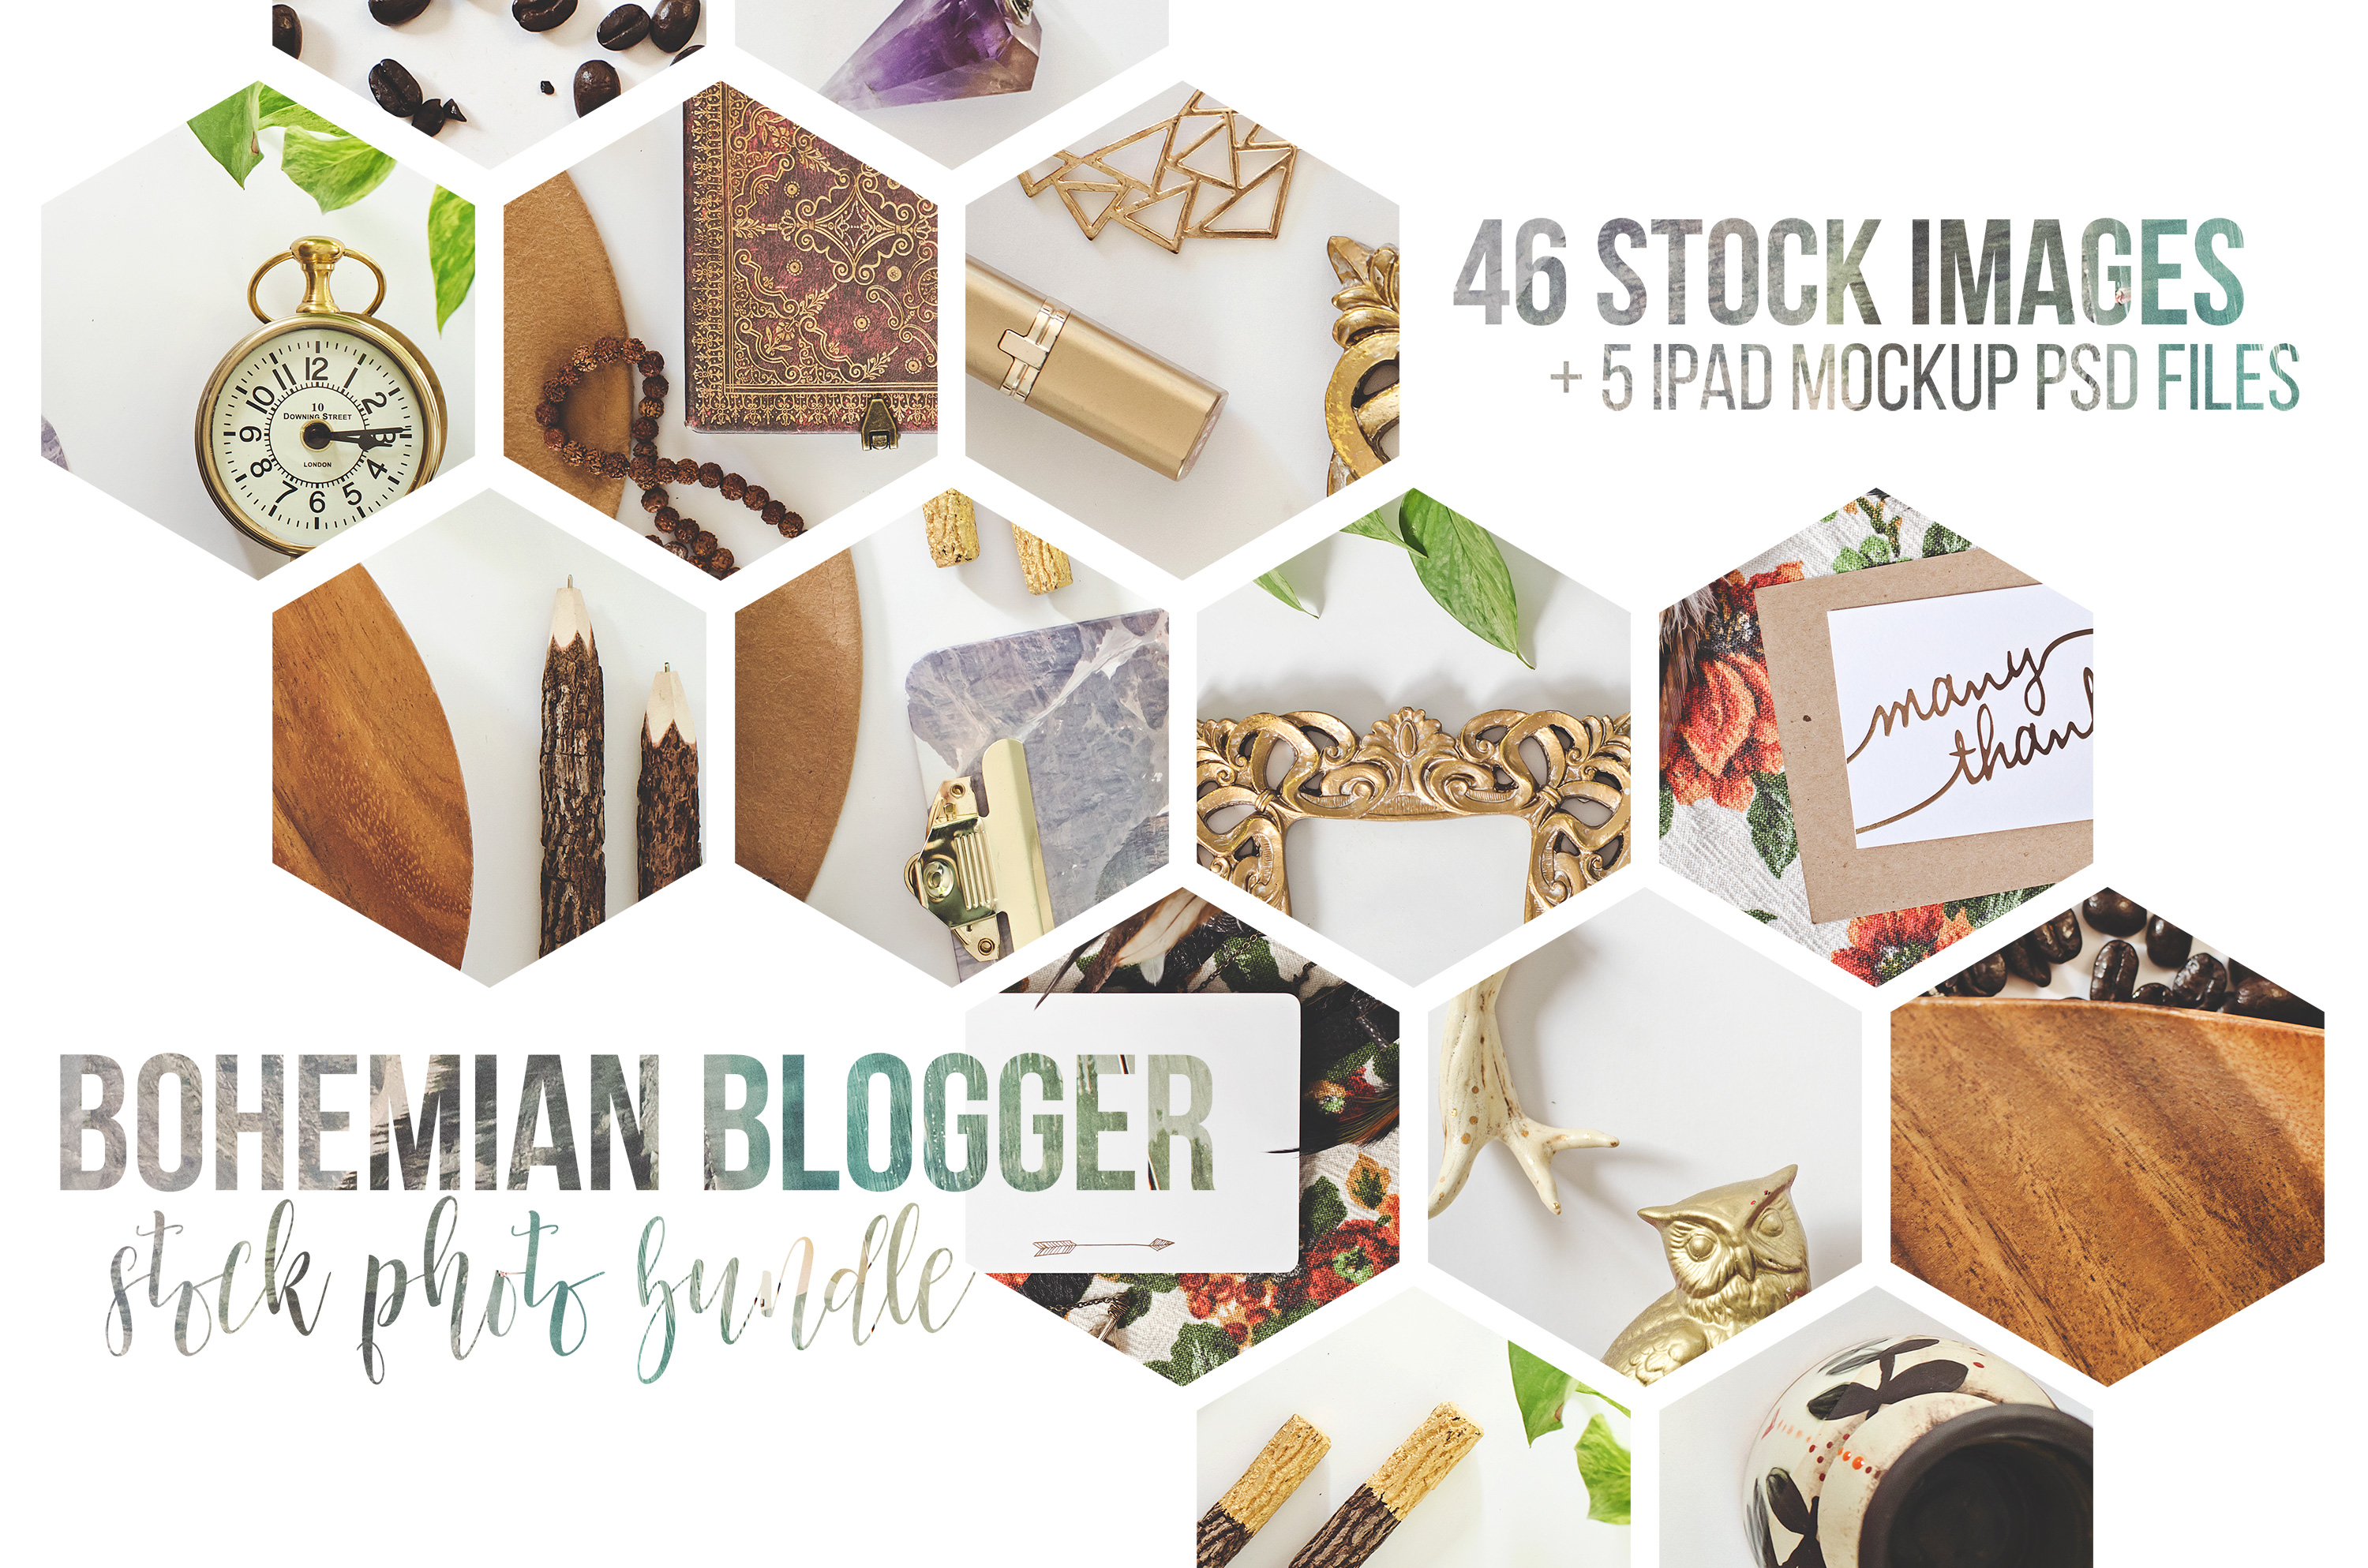 The Bohemian Blogger Stock Photography example image 8